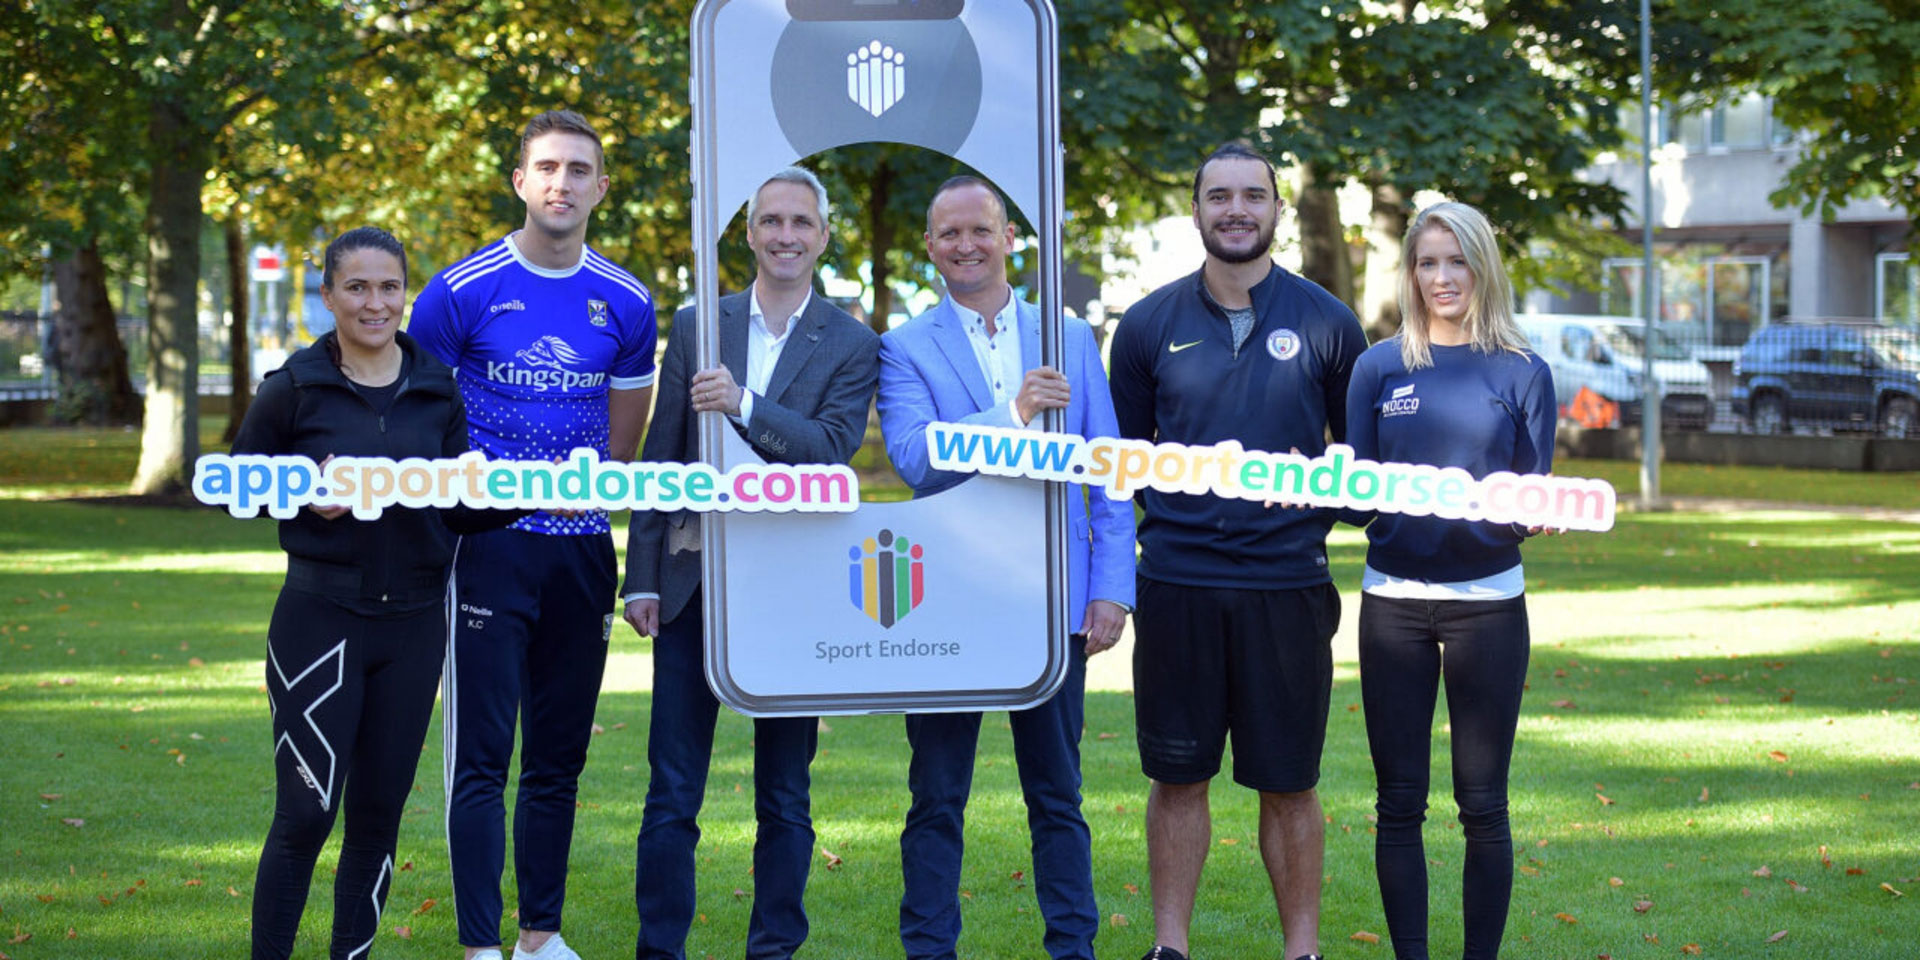 Sport Endorse founders Declan Bourke and Trevor Twamley PR shot with 4 athletes holding giant mobile phone and online URL promotional banners